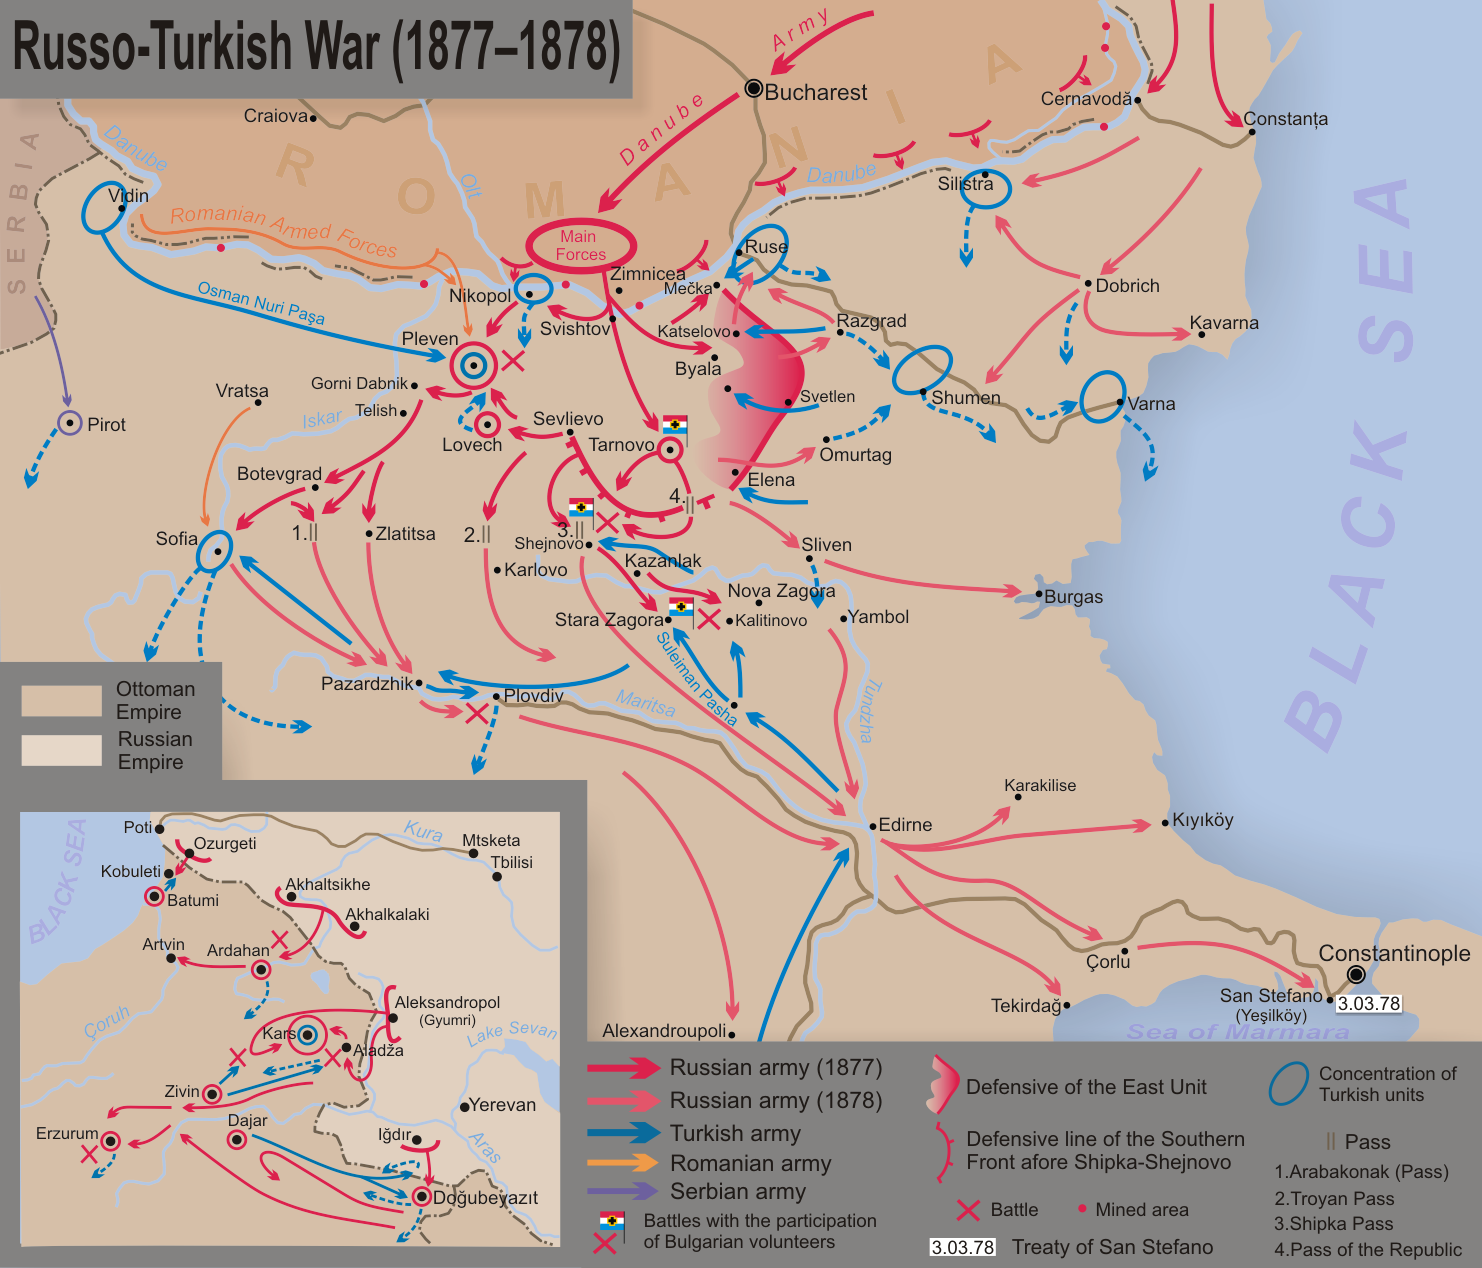 http://upload.wikimedia.org/wikipedia/commons/1/10/Russo-Turkish_War_%281877%E2%80%931878%29.png